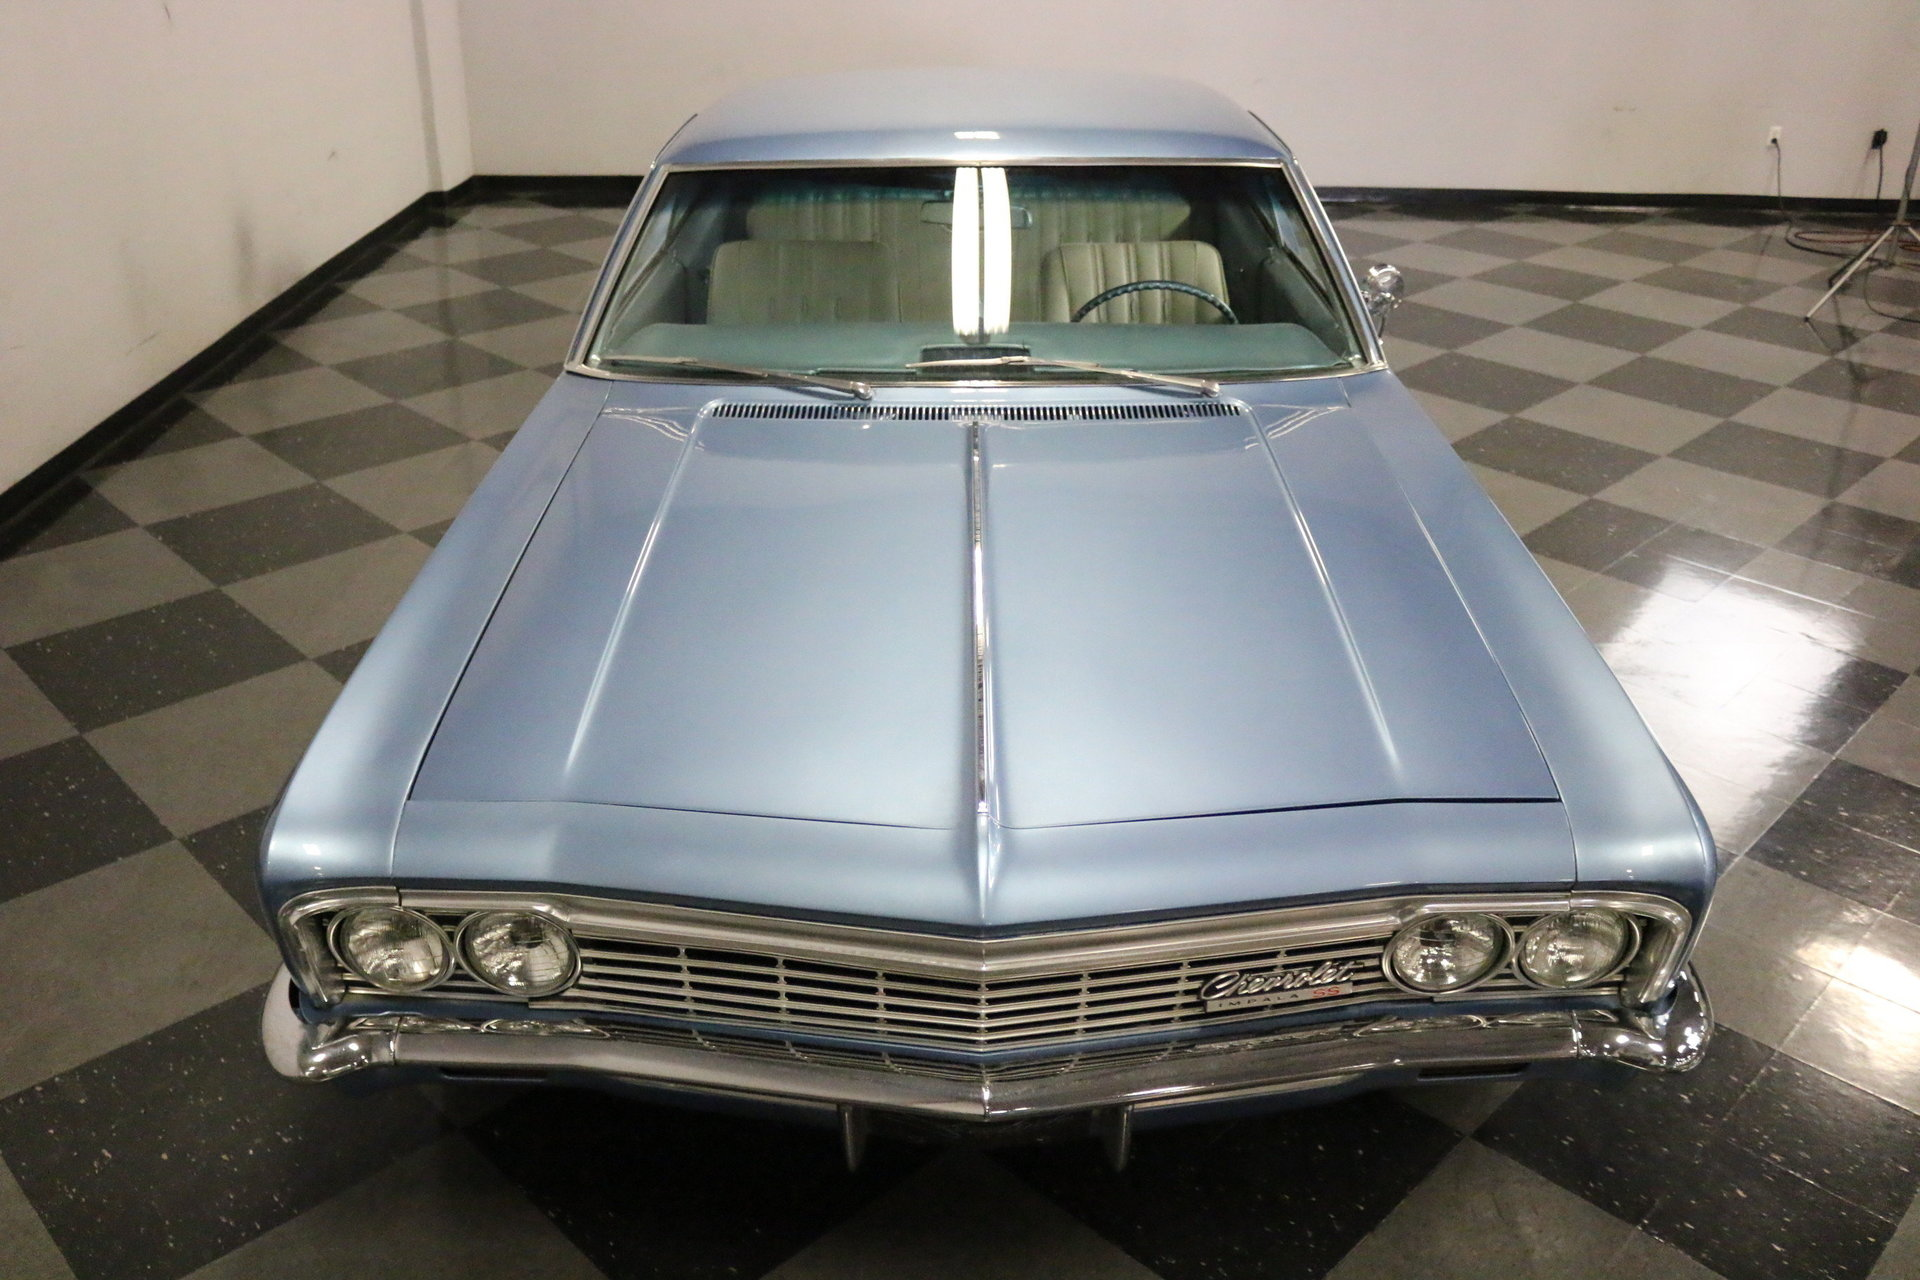 1966 Chevrolet Impala Berlin Motors Chevy Radiator For Sale